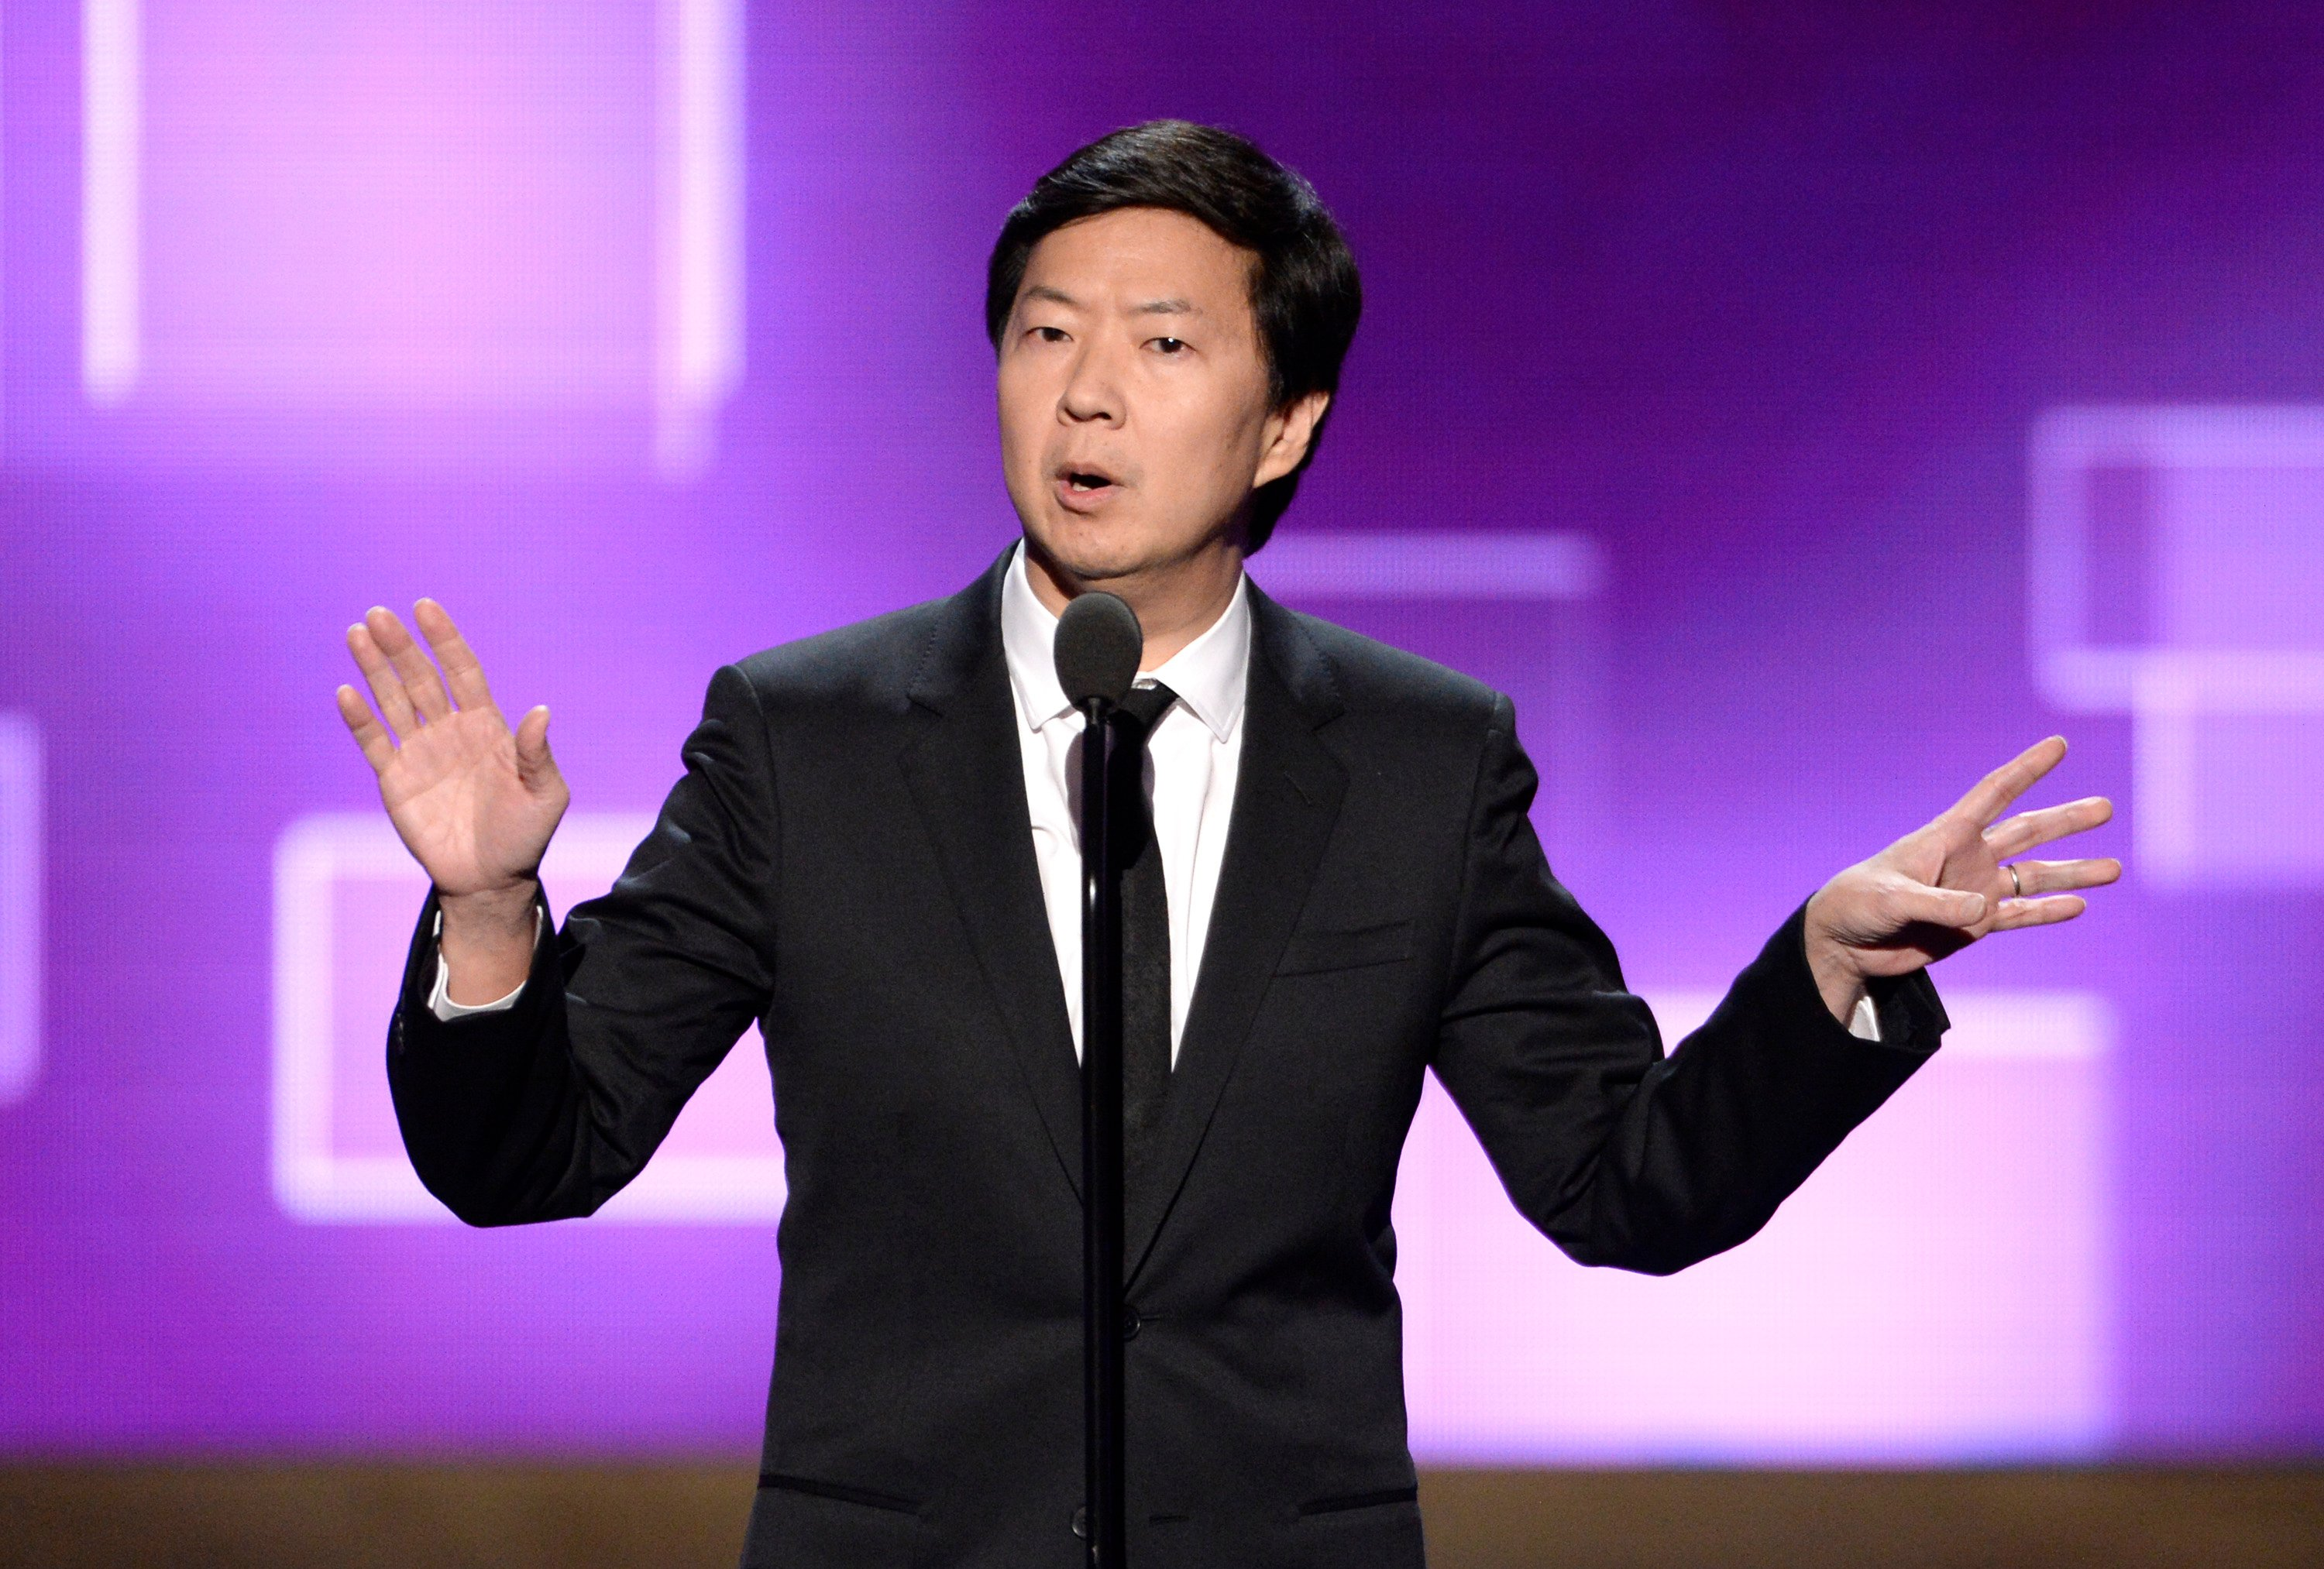 Ken Jeong Desktop wallpaper